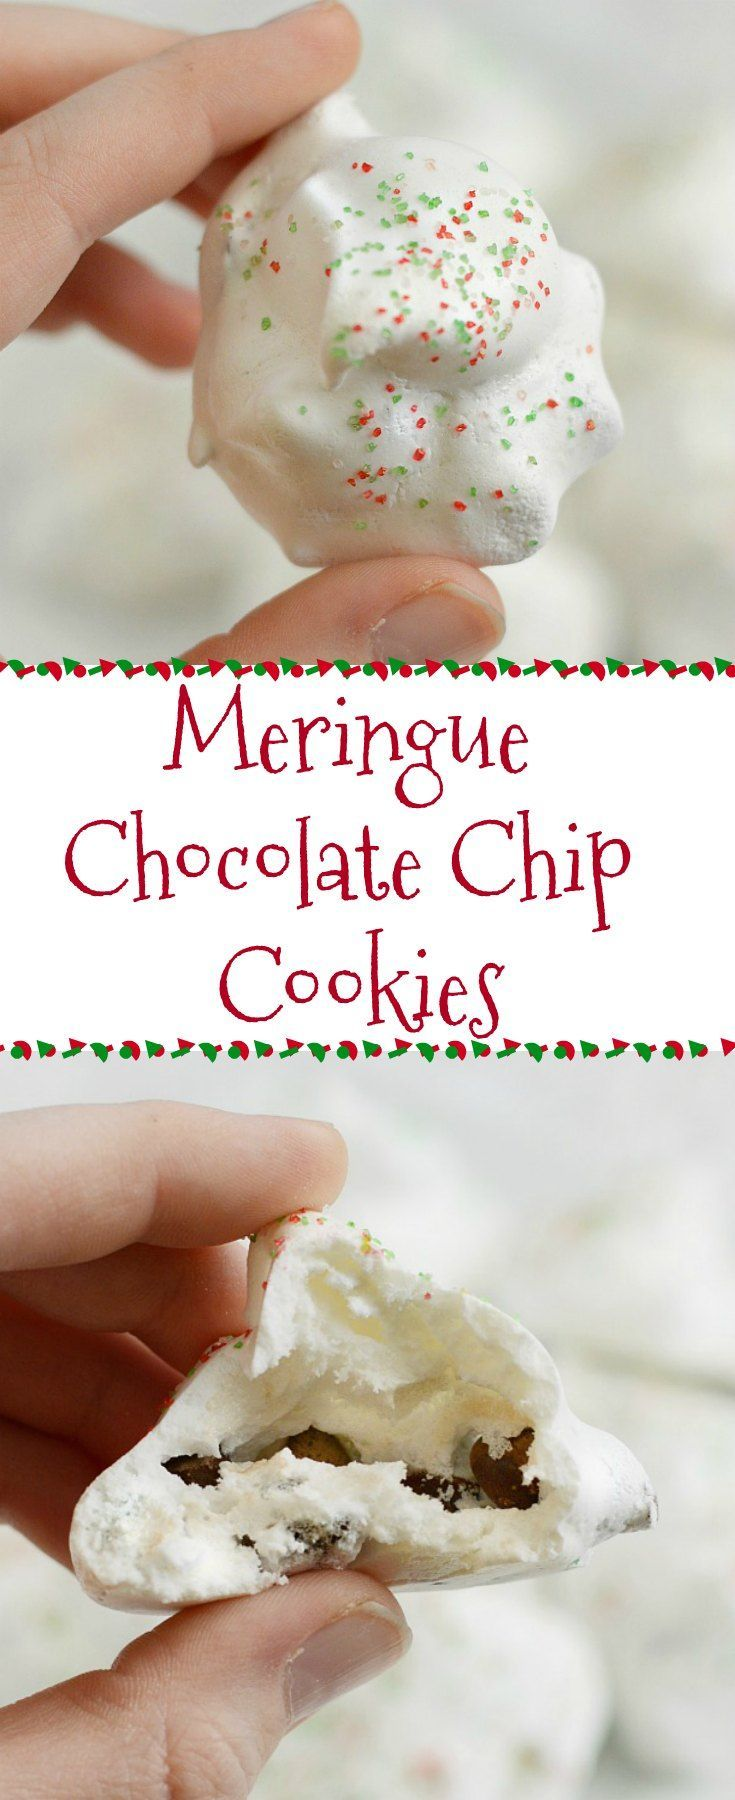 Meringue Chocolate Chip Cookies - Made with egg whites, sugar and a couple of other ingredients, these light and airy cookies melt in your mouth and have a surprise chocolate chip center. They're also gluten free and low in calories. Perfect for Christmas, holidays or any special occasion!